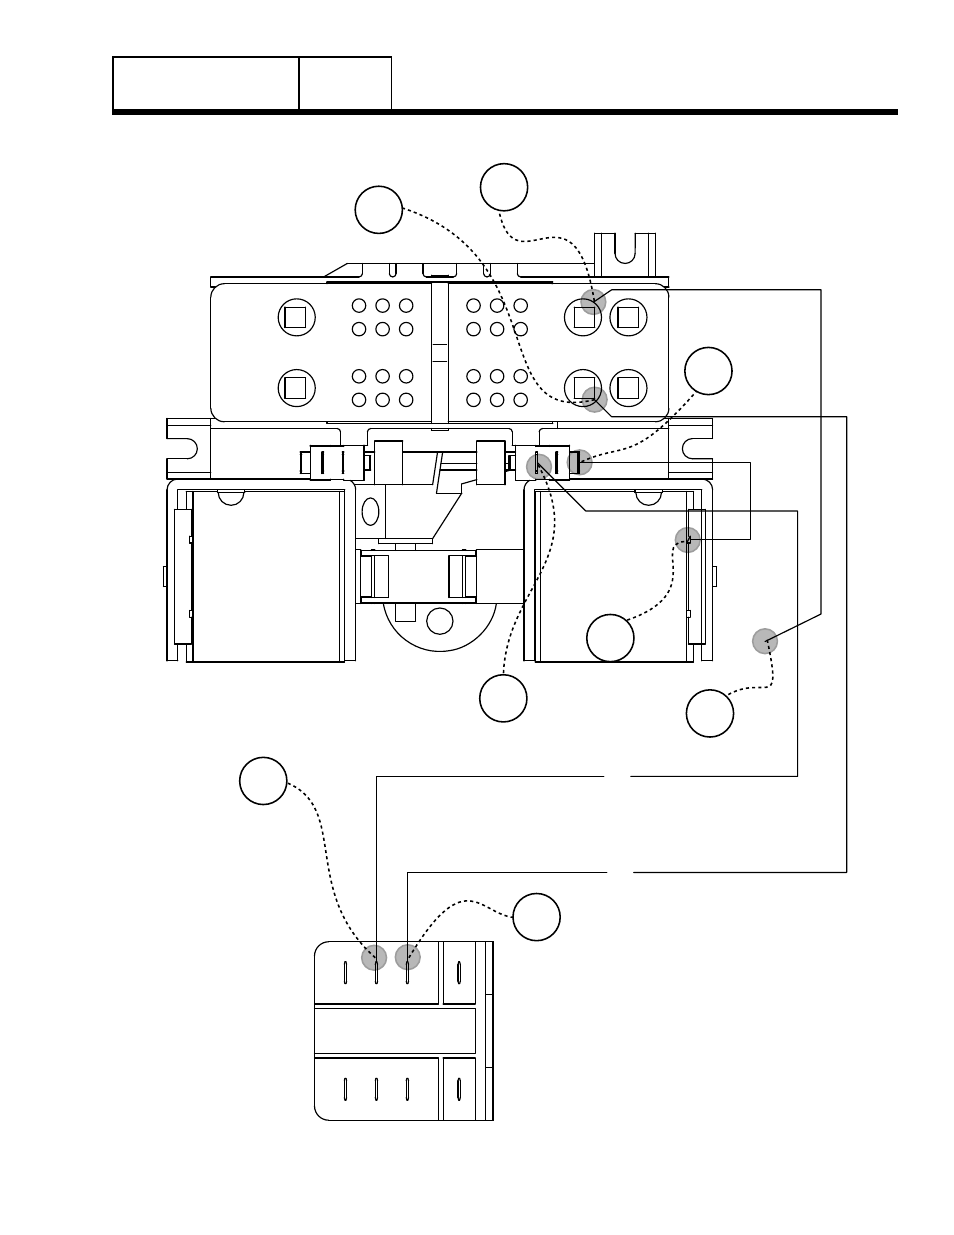 Wiring Diagram For Generac 16 Kw. Columbia Wiring Diagram